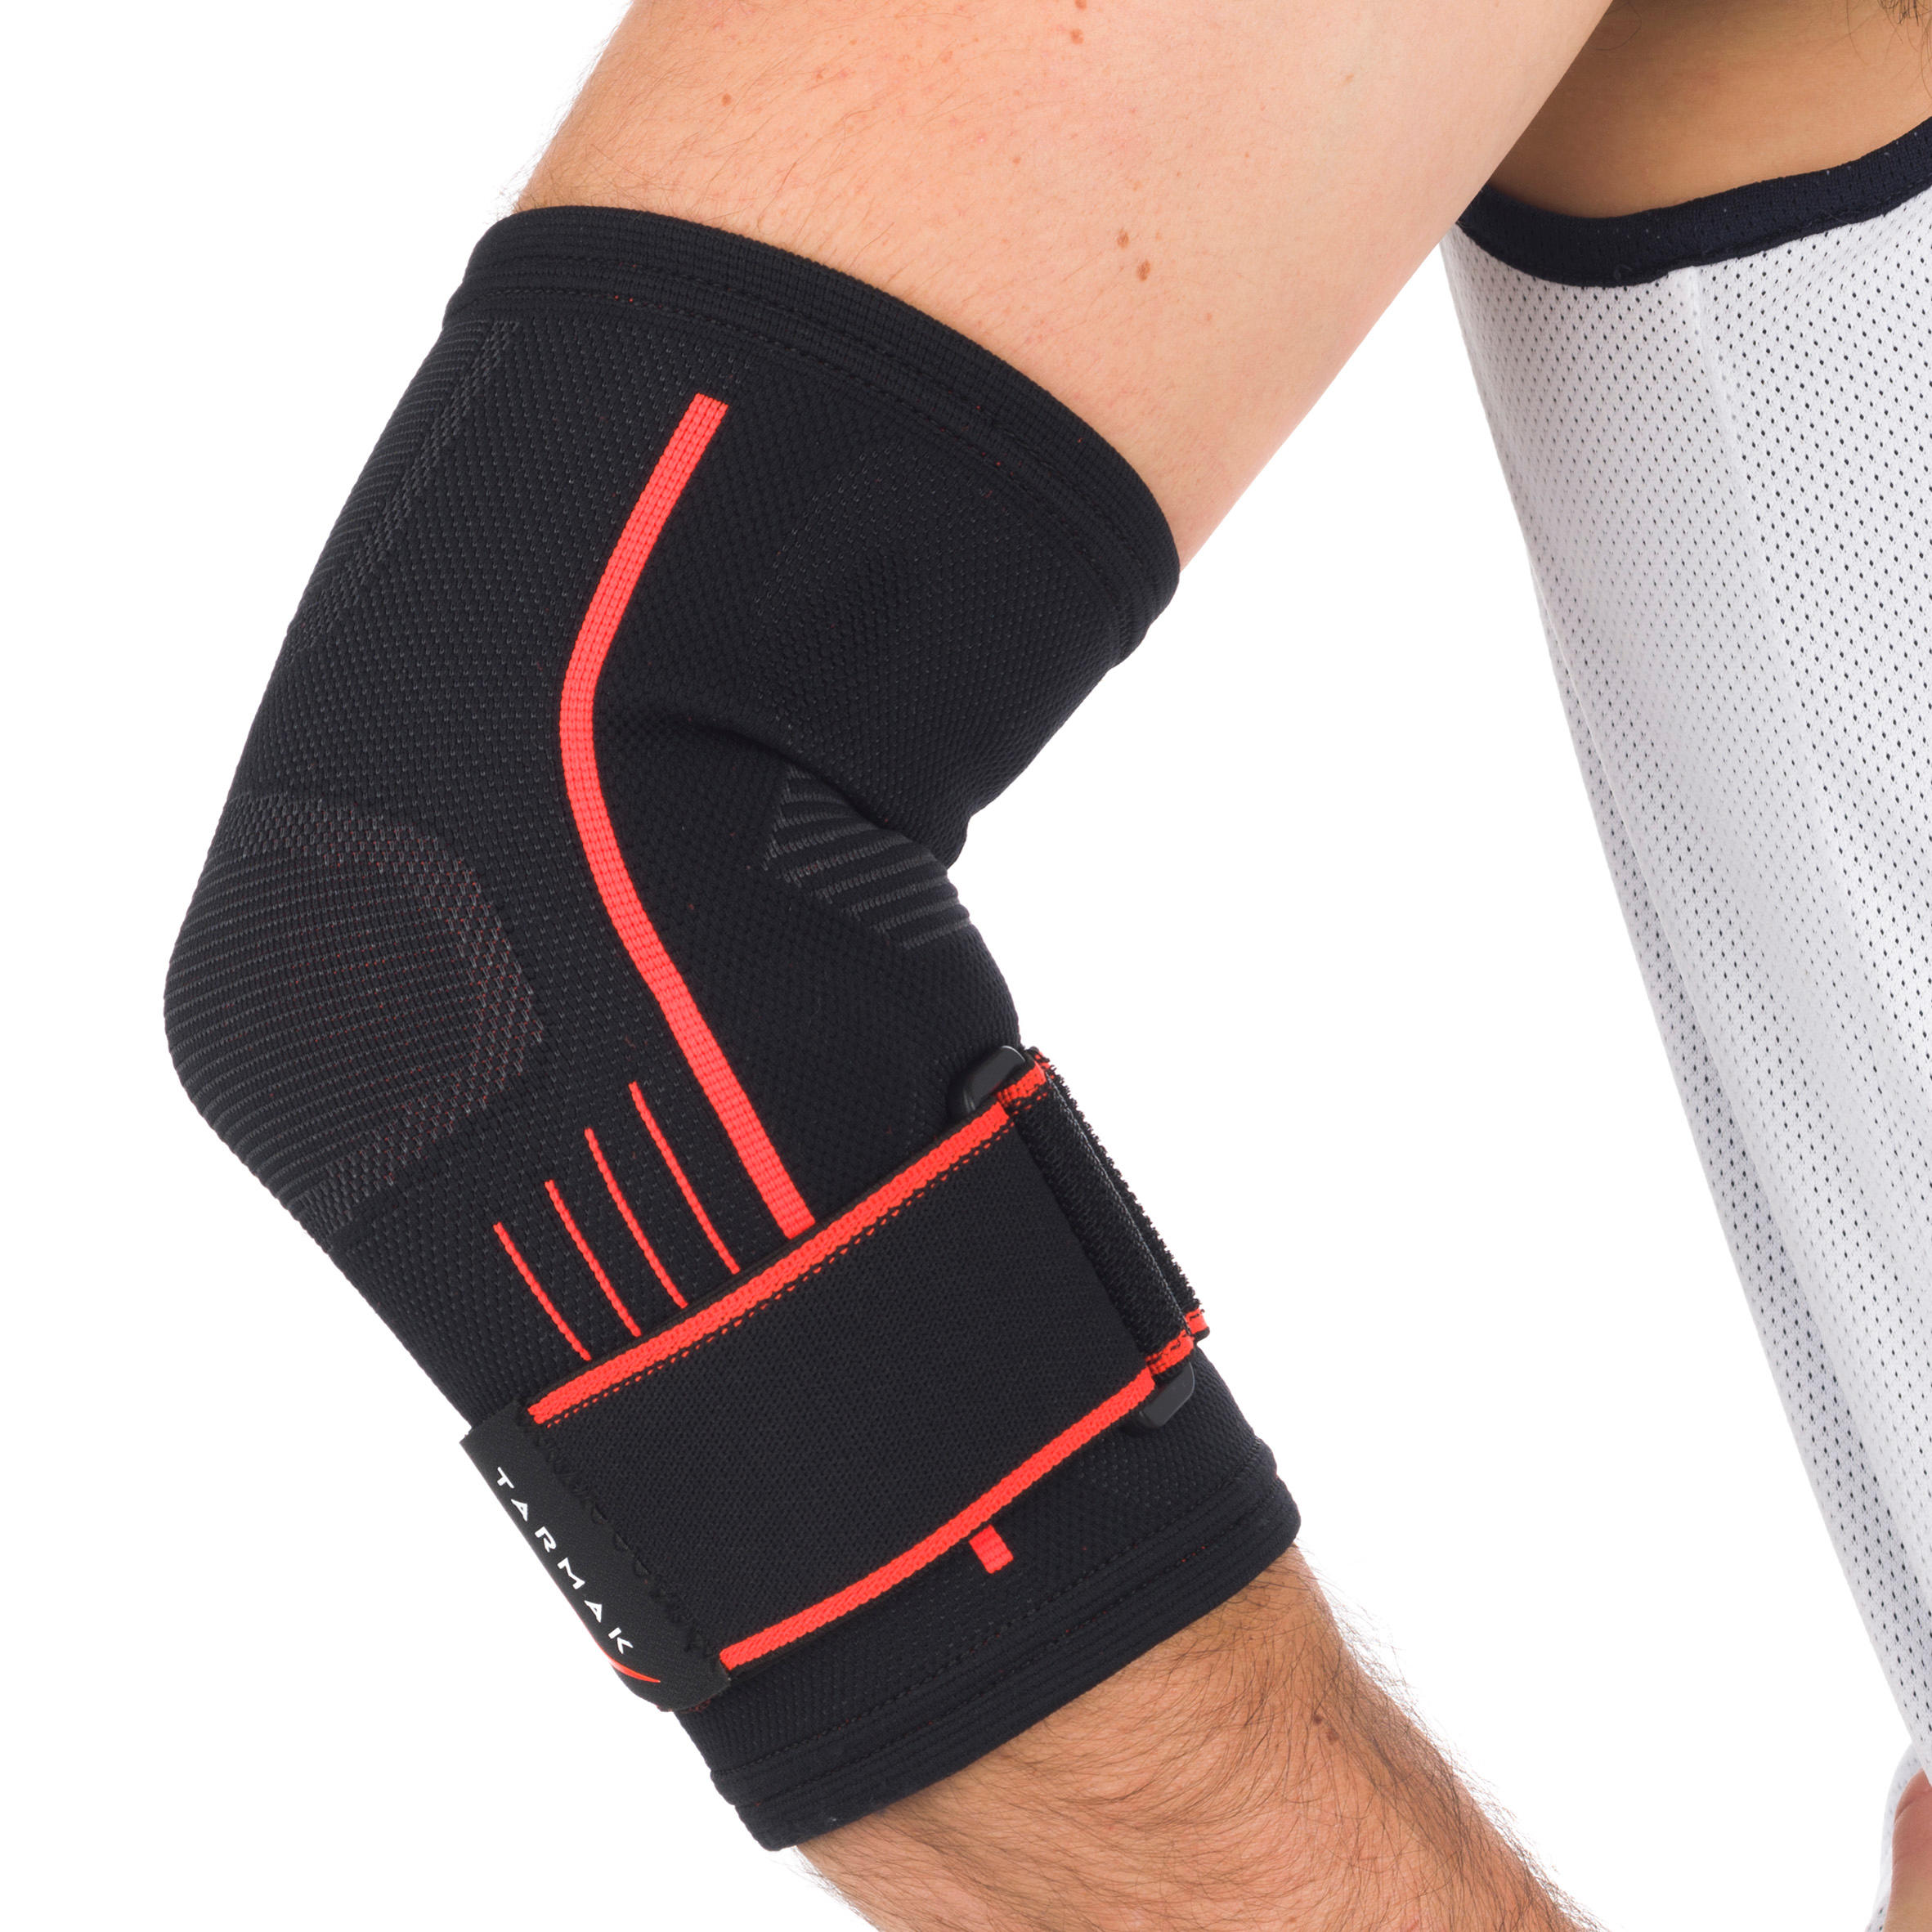 Mid 500 Elbow Brace - Black